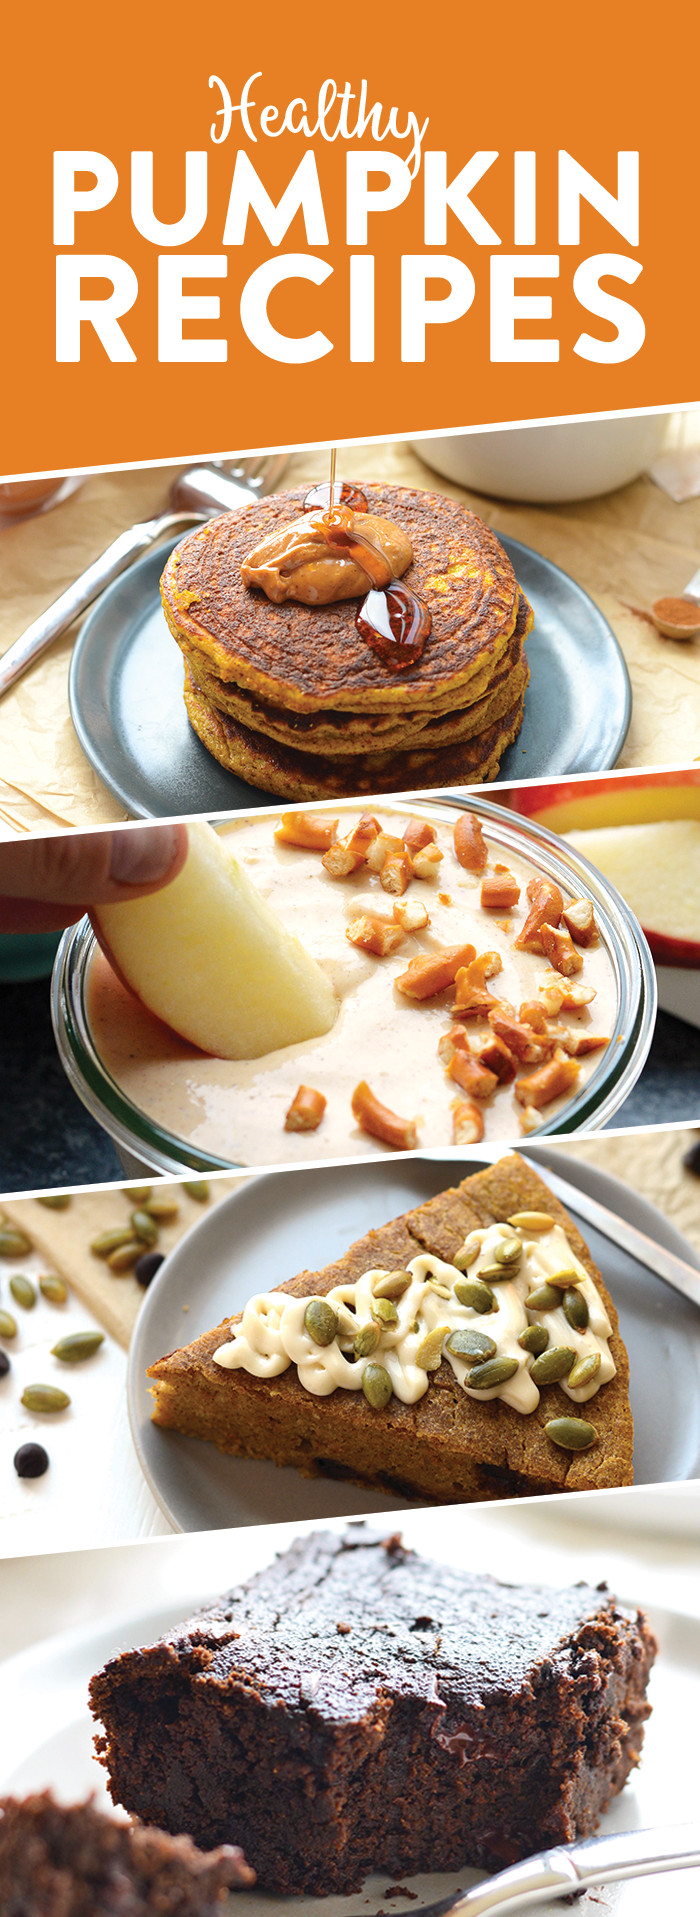 Healthy Pumpkin Recipes  10 Healthy Pumpkin Recipes You Need To Try This Fall